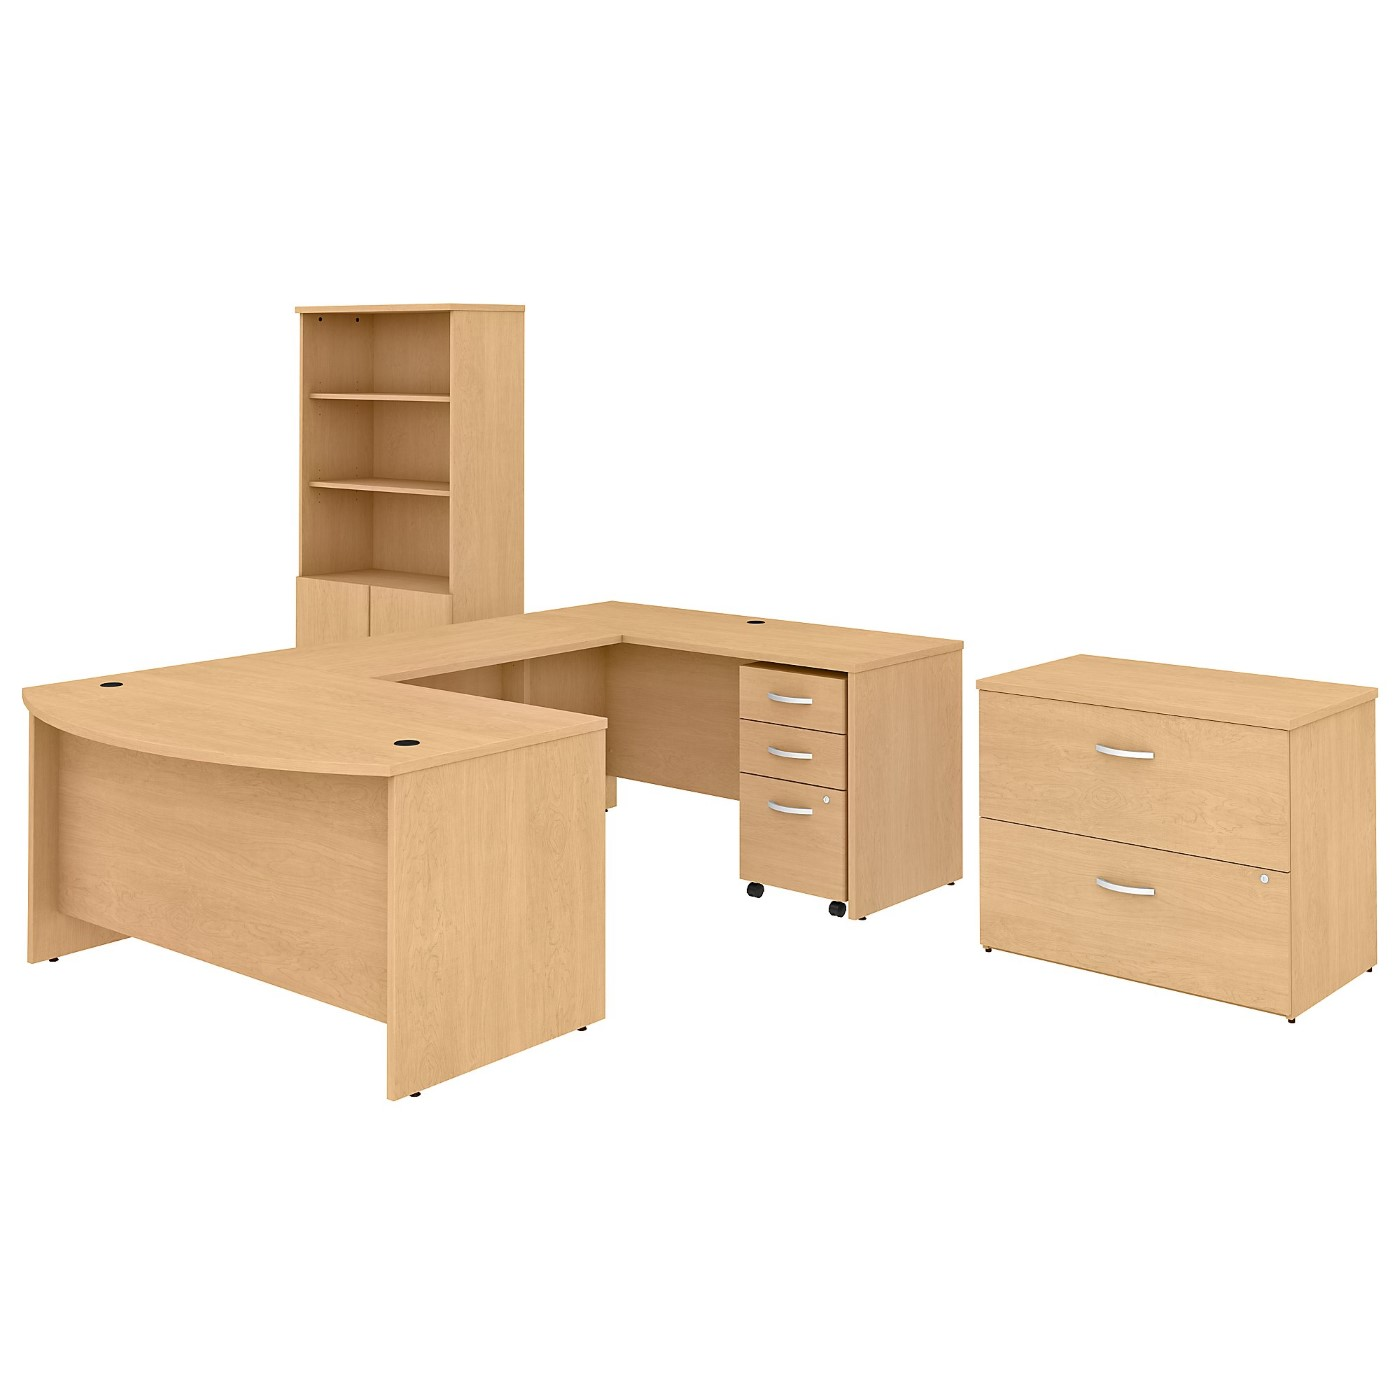 BUSH BUSINESS FURNITURE STUDIO C 60W X 36D U SHAPED DESK WITH BOOKCASE AND FILE CABINETS. FREE SHIPPING SALE DEDUCT 10% MORE ENTER '10percent' IN COUPON CODE BOX WHILE CHECKING OUT.